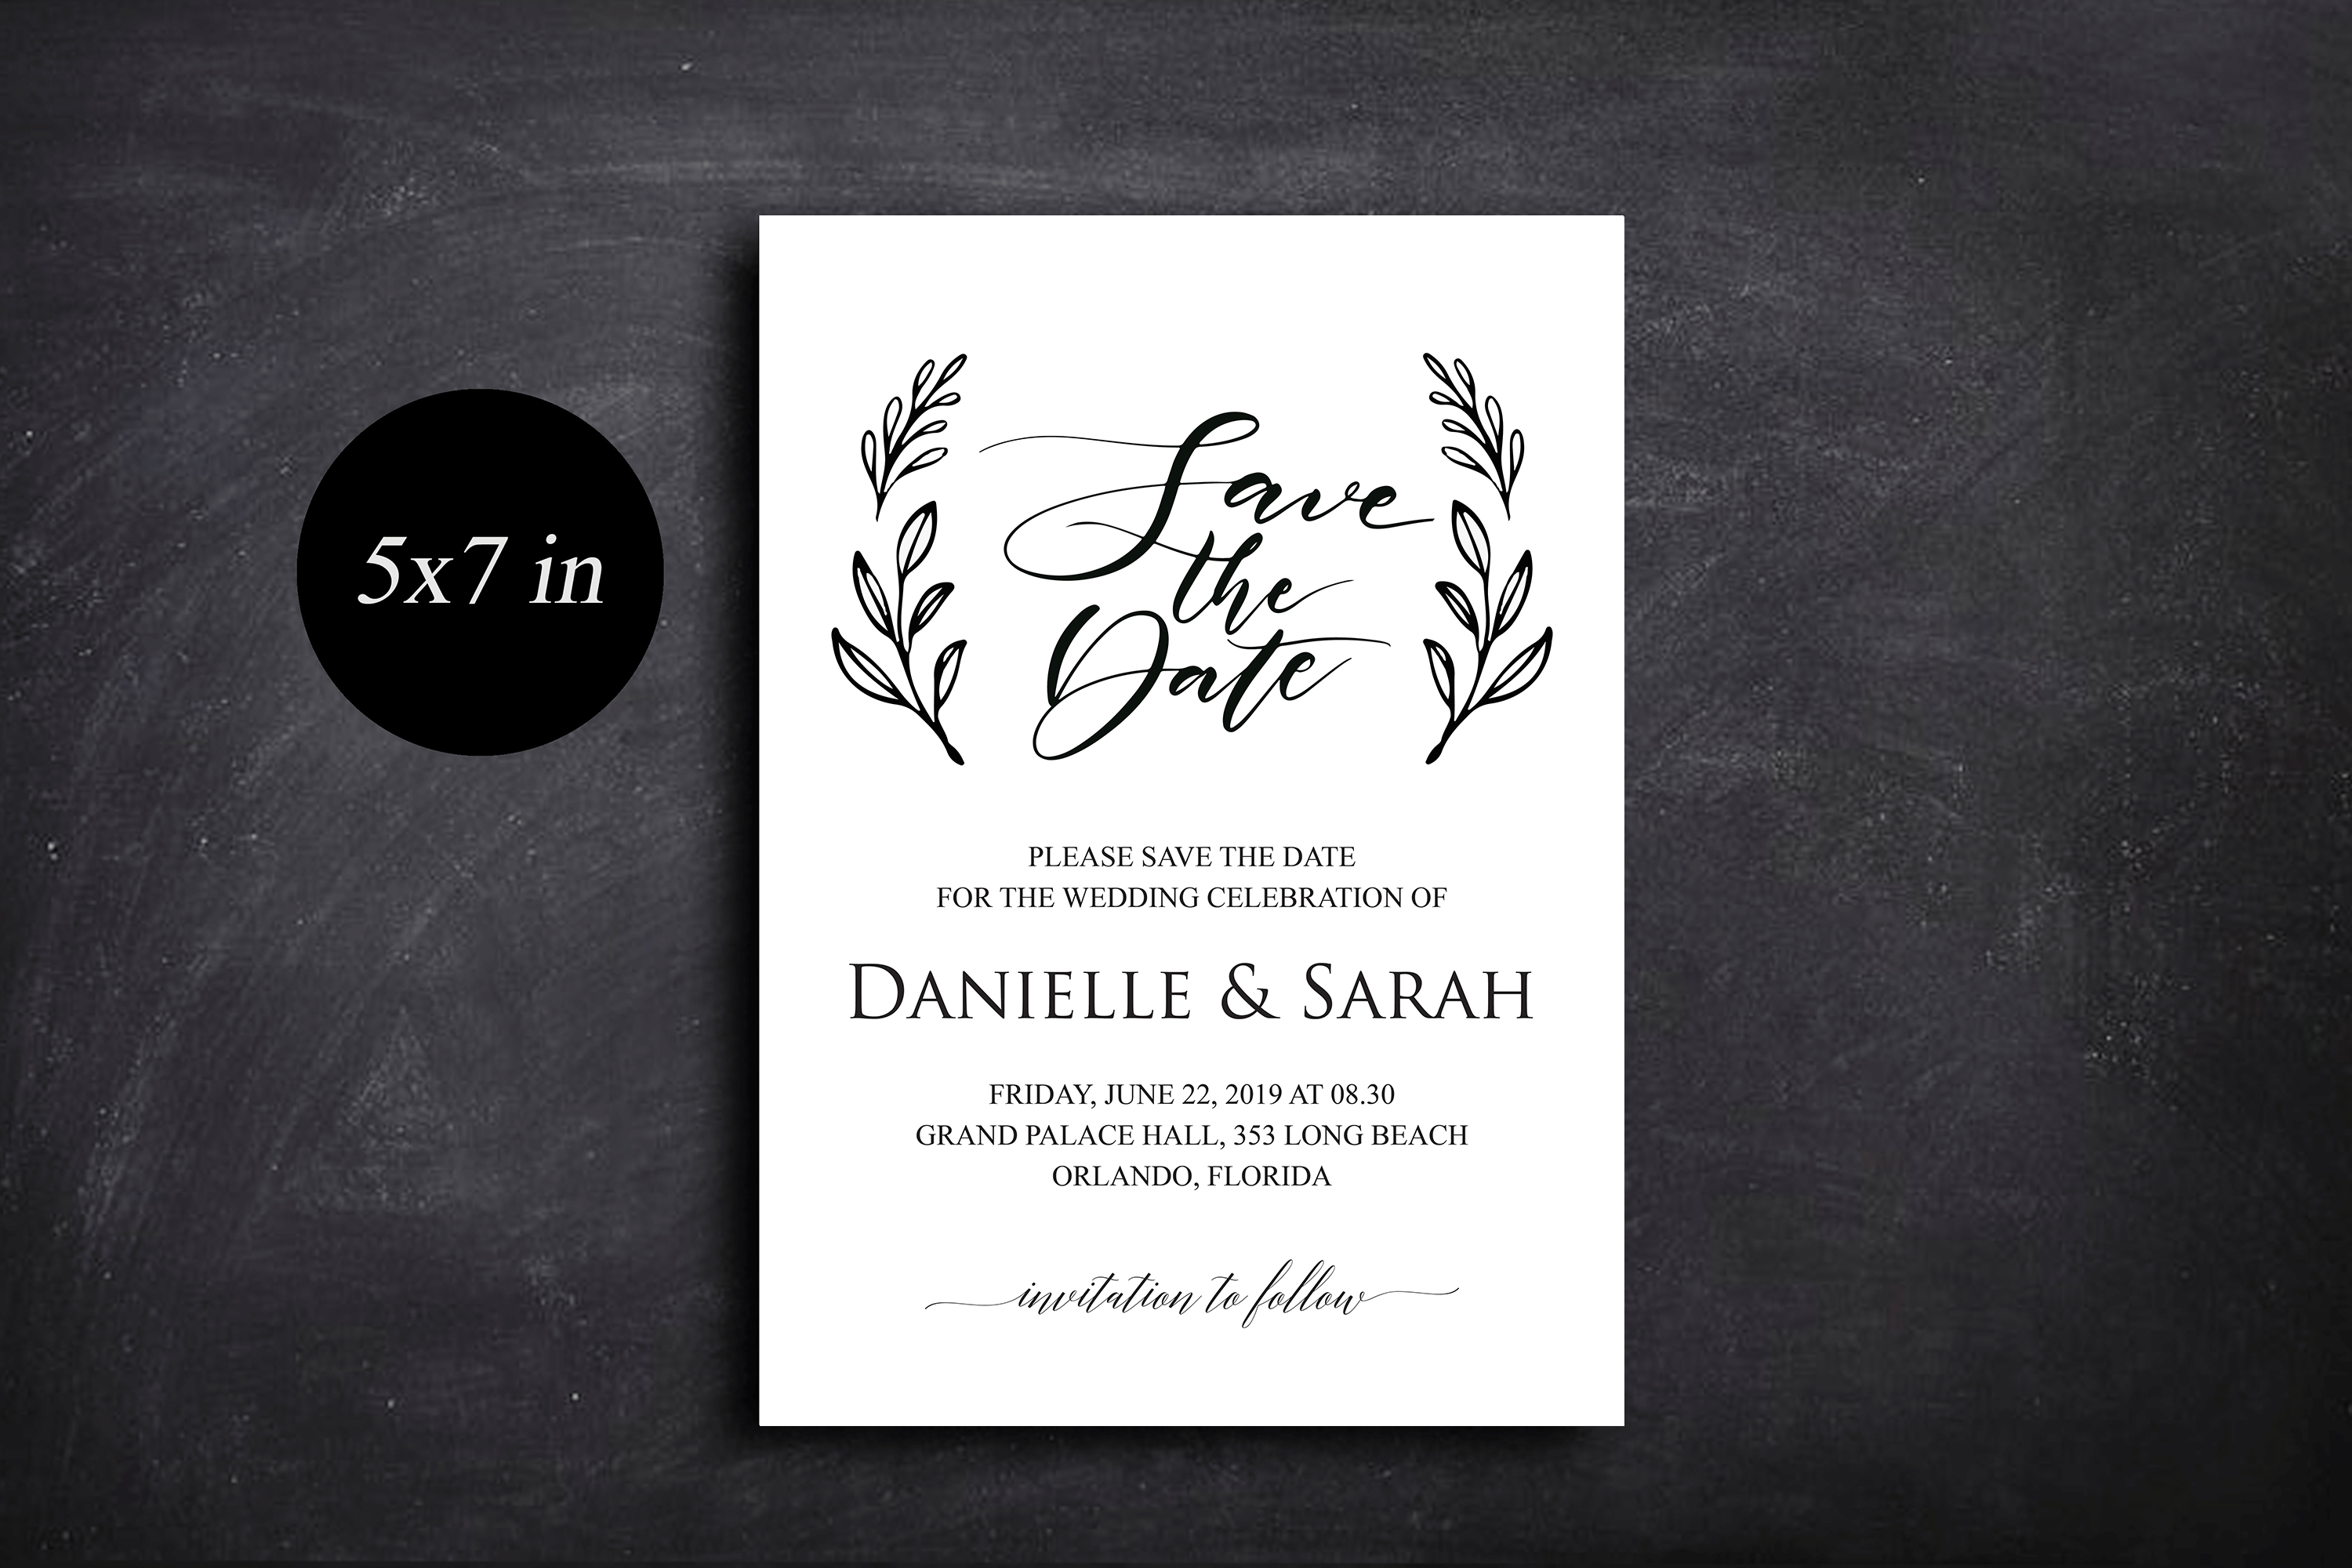 Save the Date Invitation, Save the Date Template example image 4